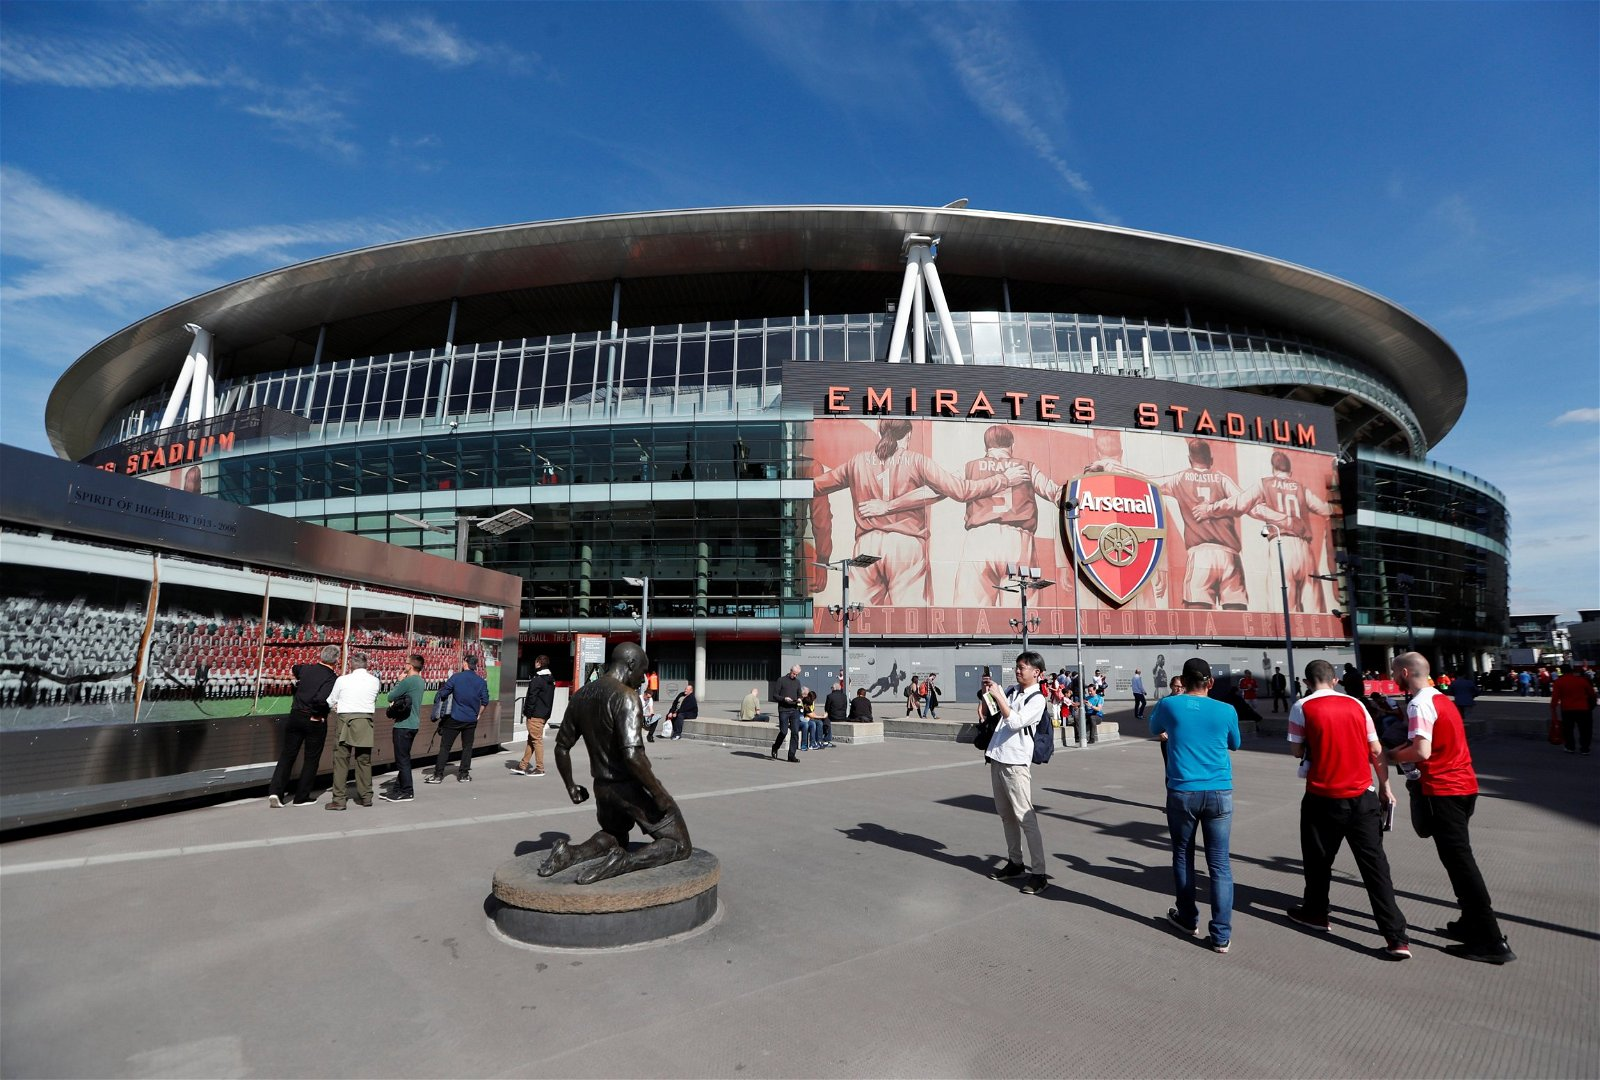 Arsenal - Emirates Stadium